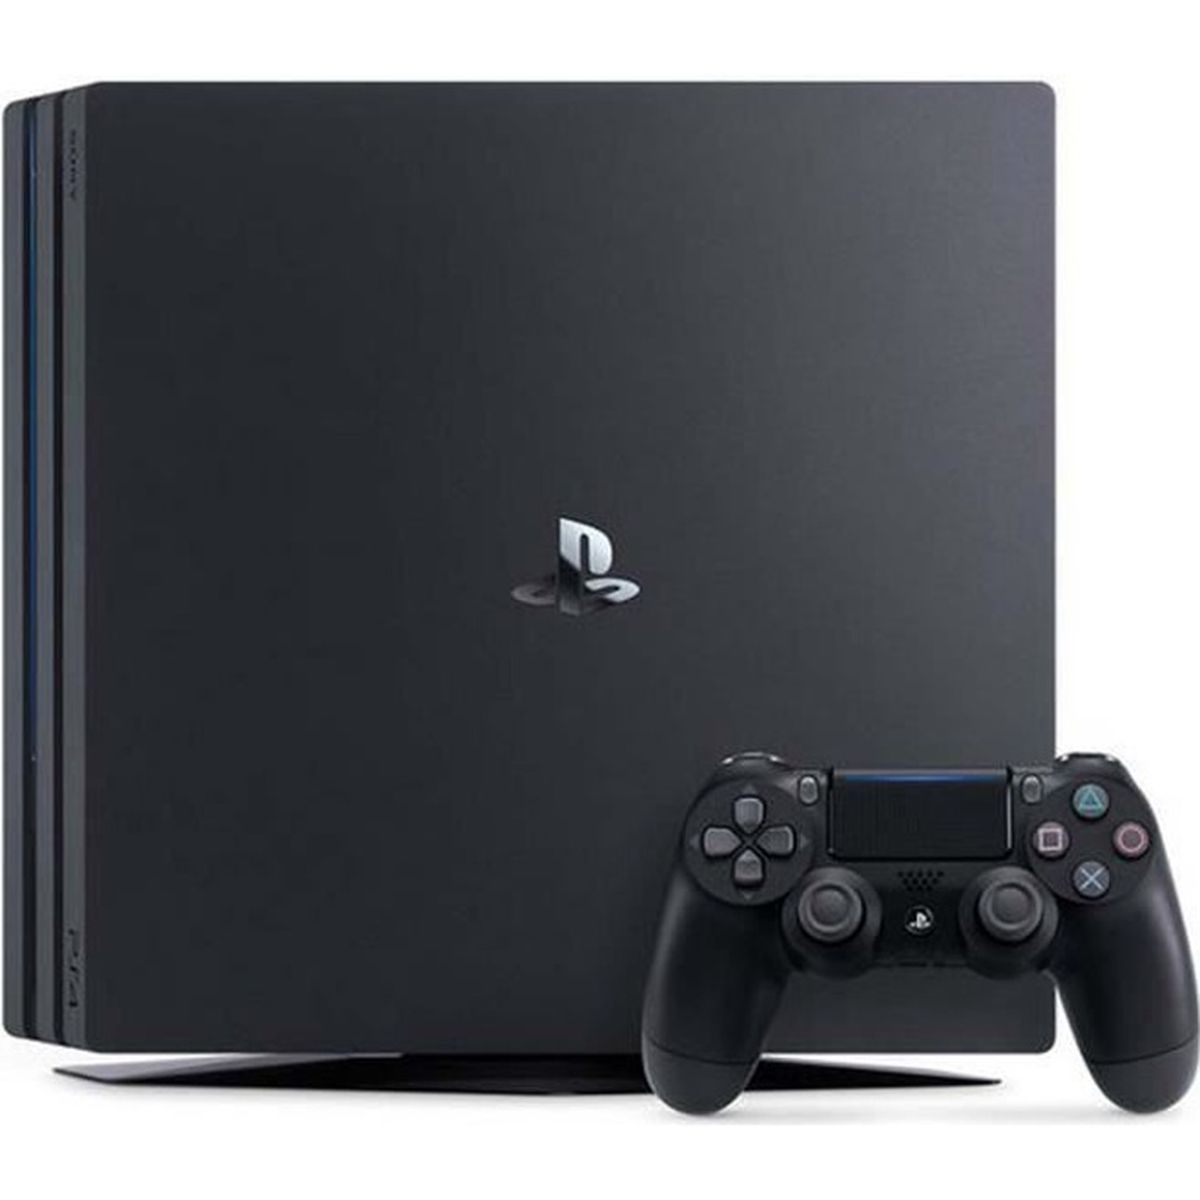 console ps4 pro 1 tb noir achat vente console ps4 console ps4 pro 1 tb noir cdiscount. Black Bedroom Furniture Sets. Home Design Ideas